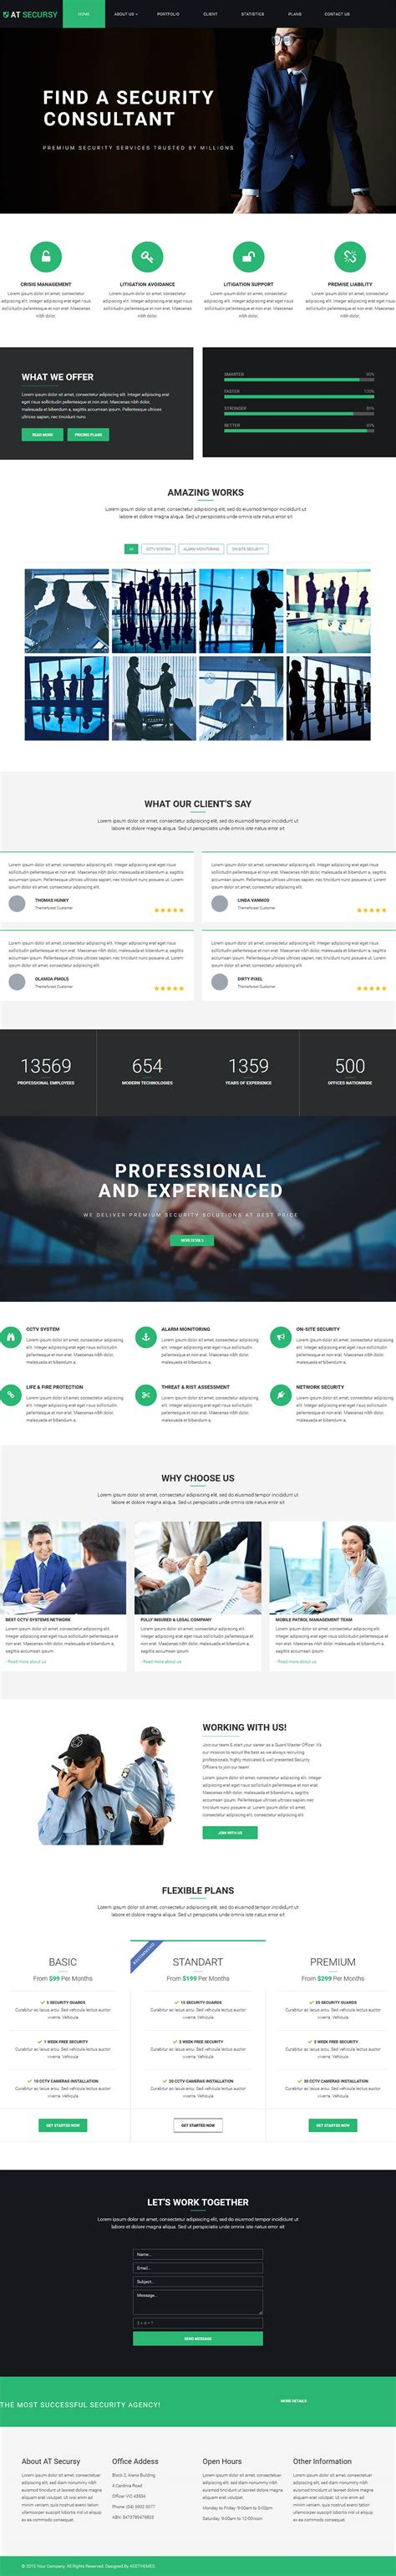 Onepage Theme Age Themes Secursy Onepage V1 0 0 Landing Template For